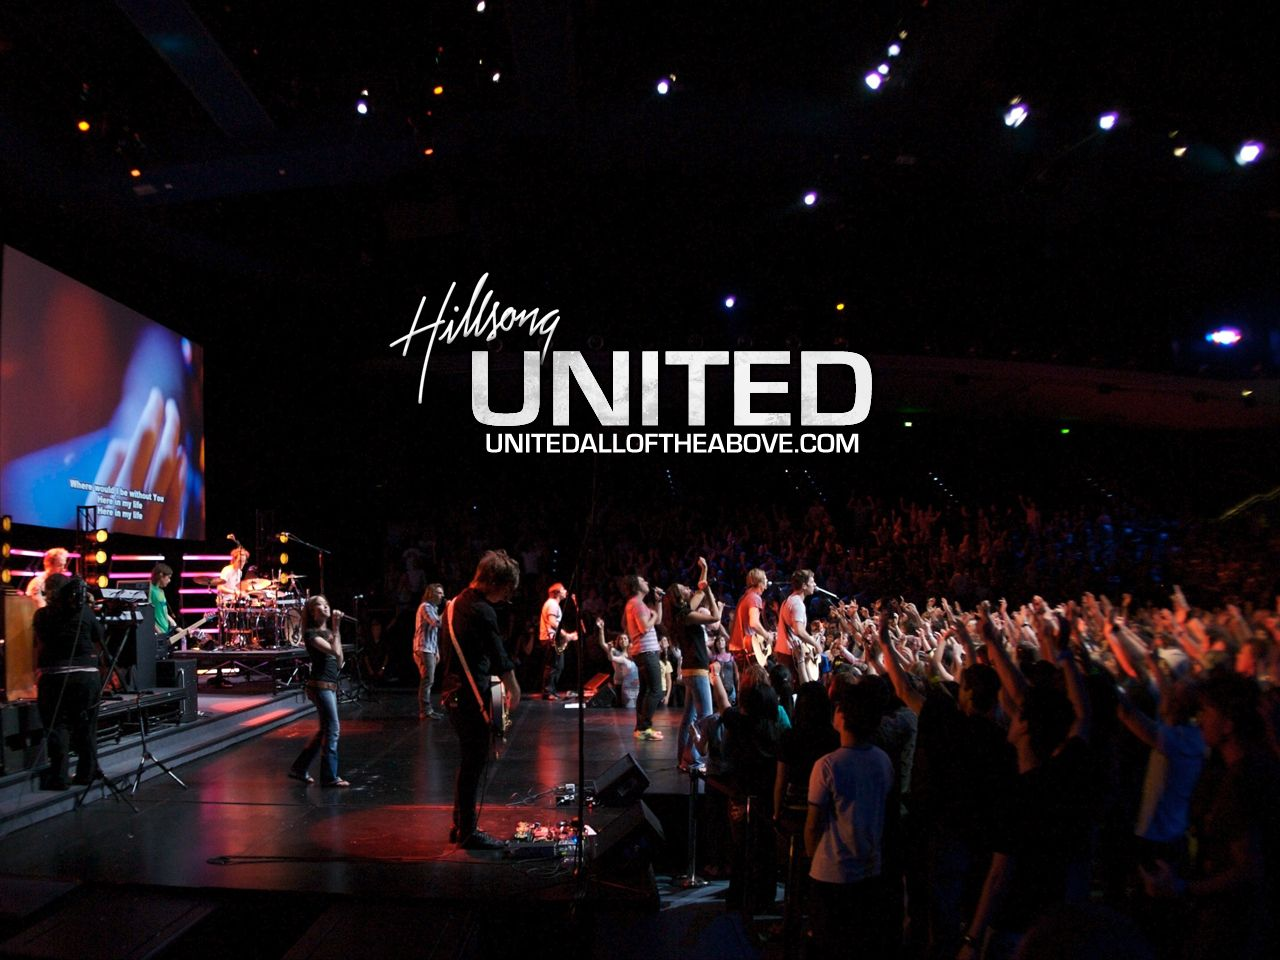 Hillsong United Show 2 Wallpaper   Christian Wallpapers and 1280x960